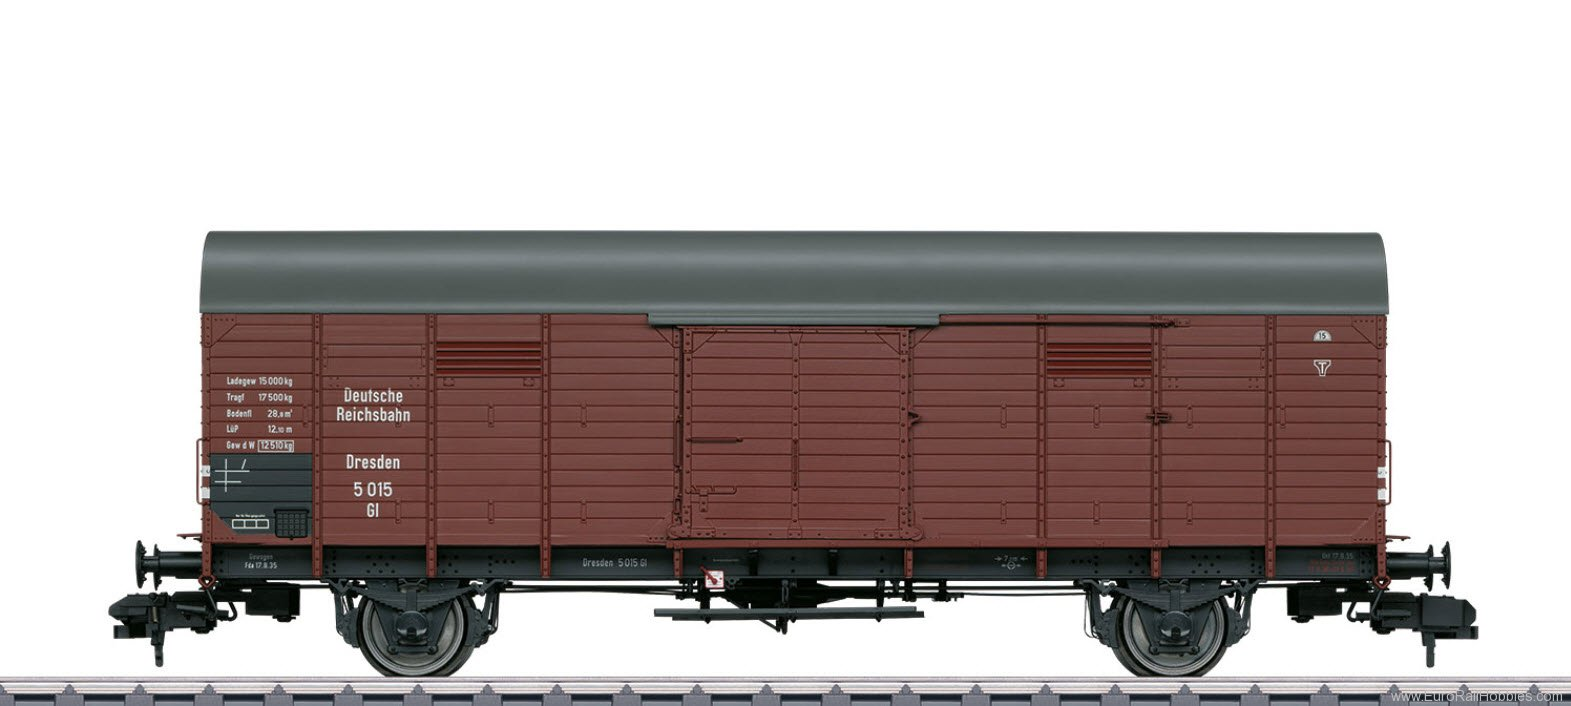 Marklin 58246 DRG type G1 Freight Car (New Tooling!)